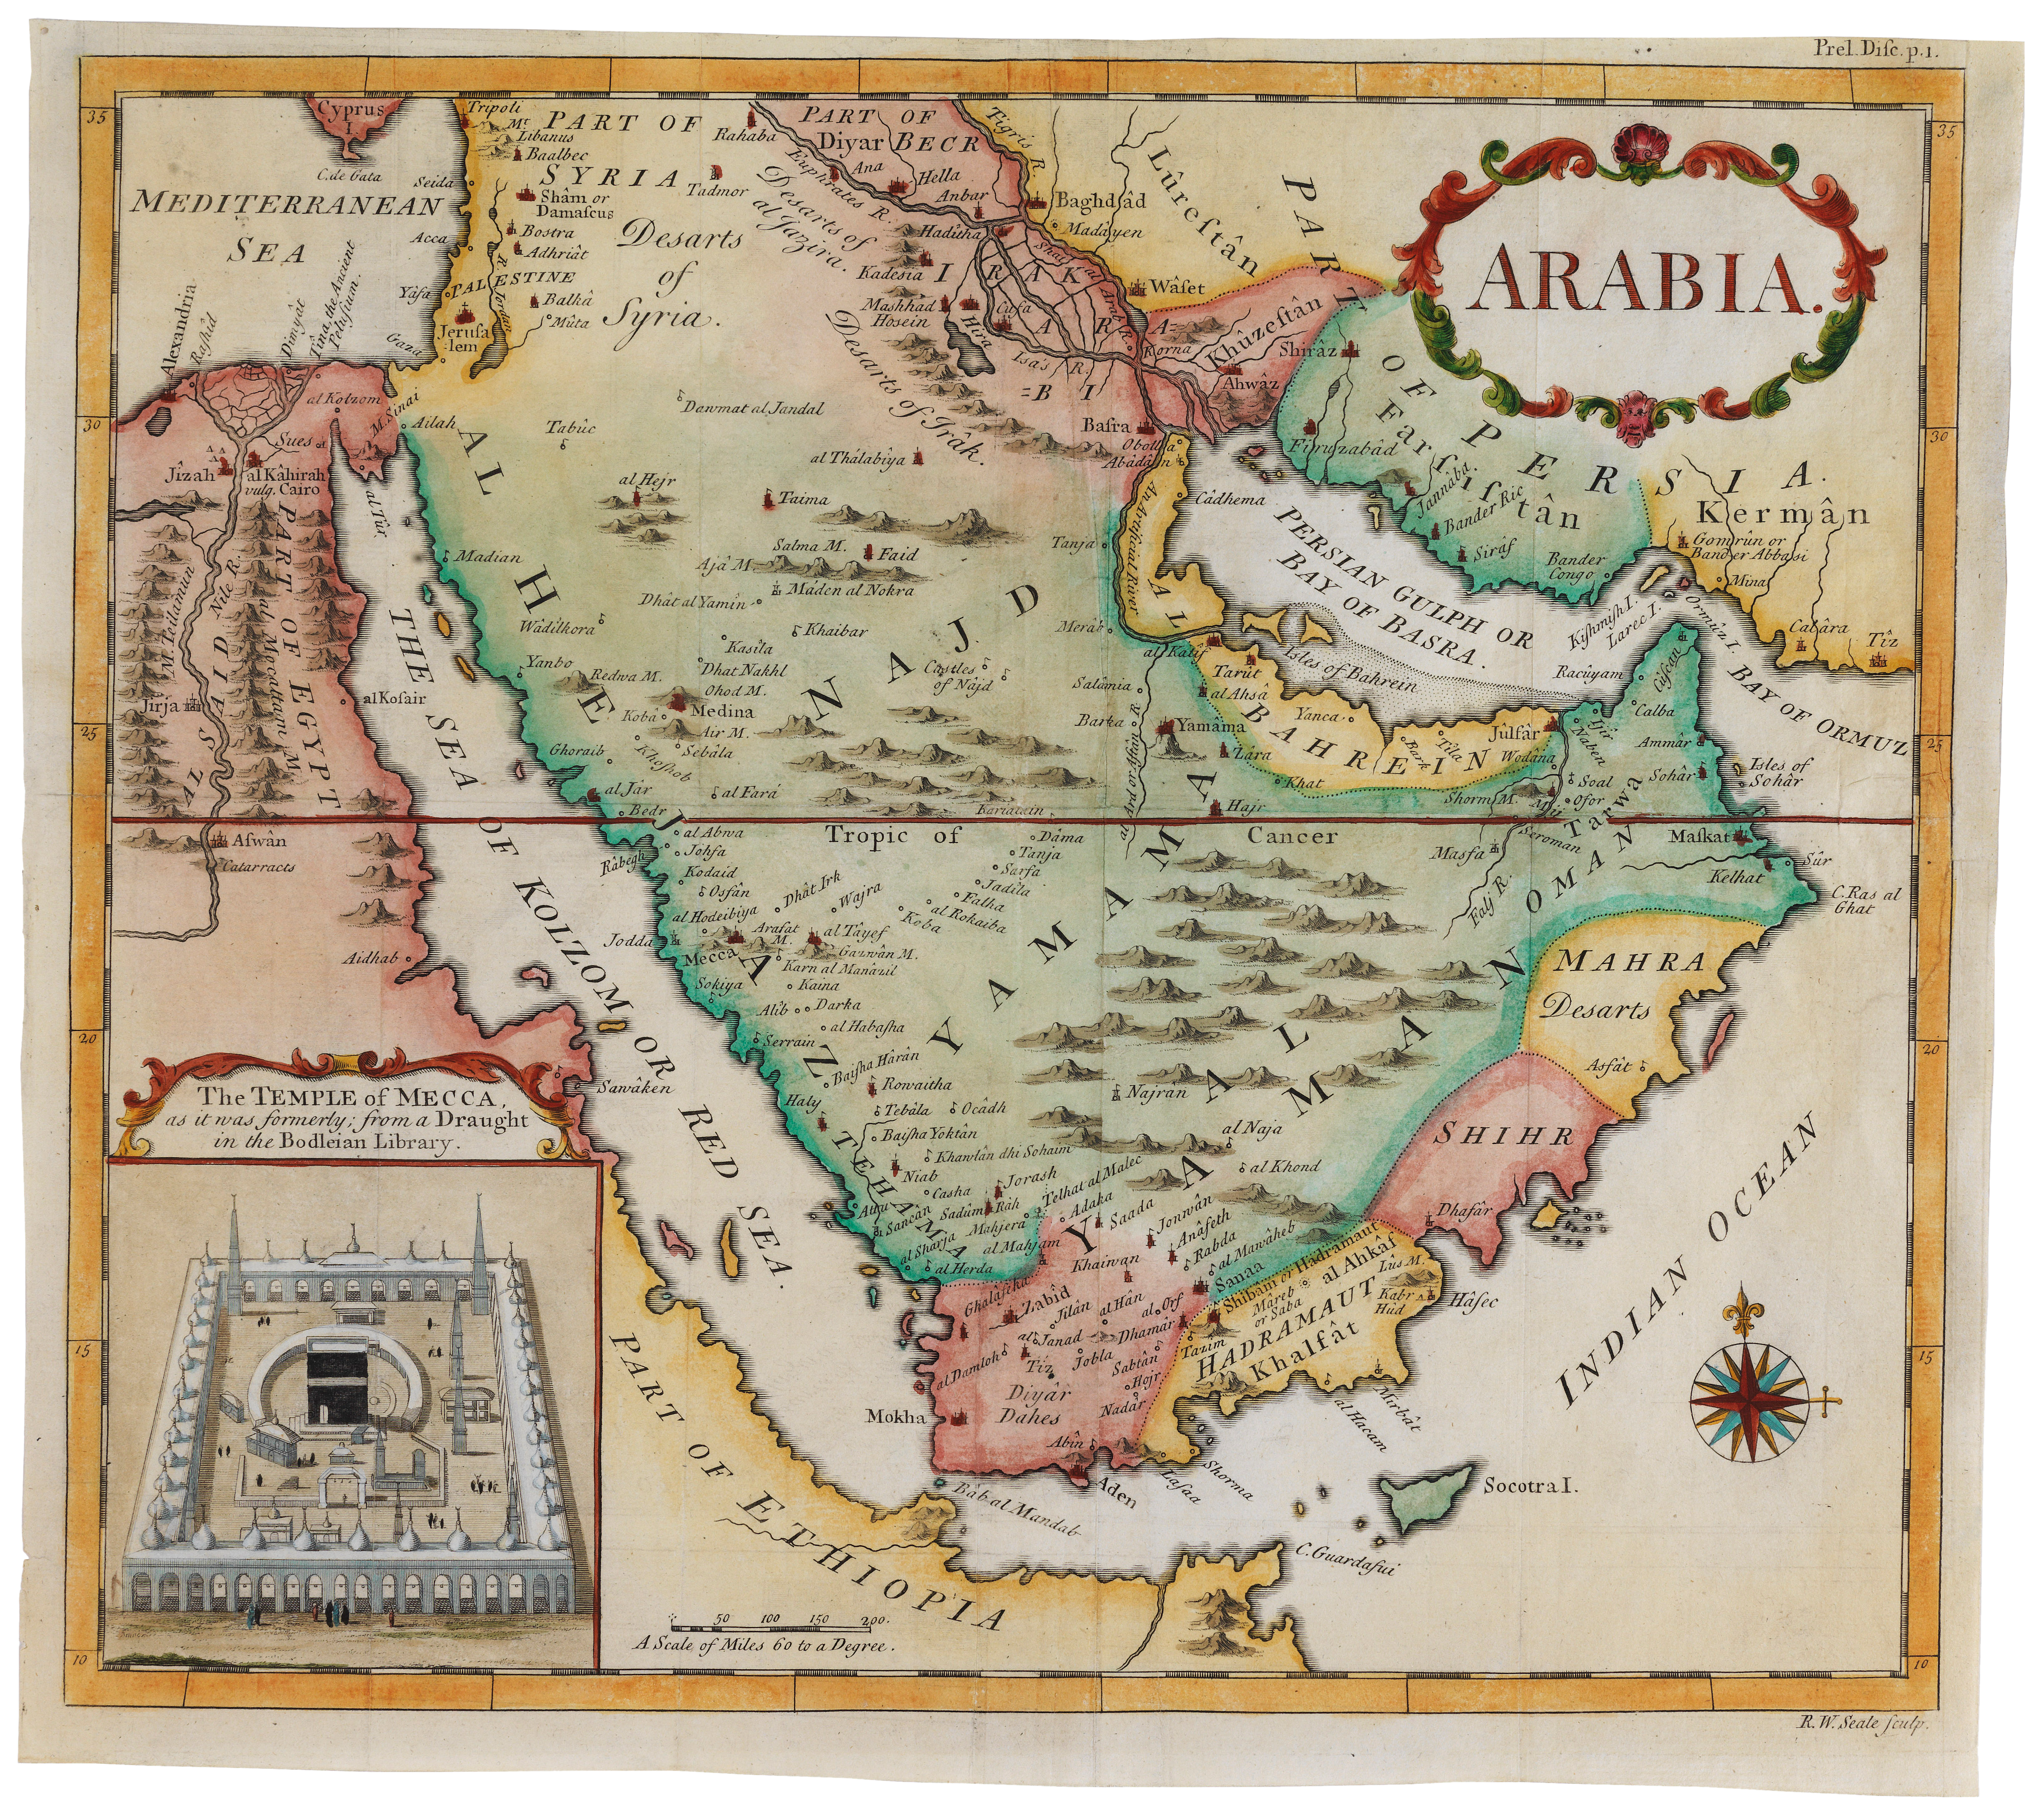 Map of Arabia with, inset, a view of 'The Temple of Mecca'